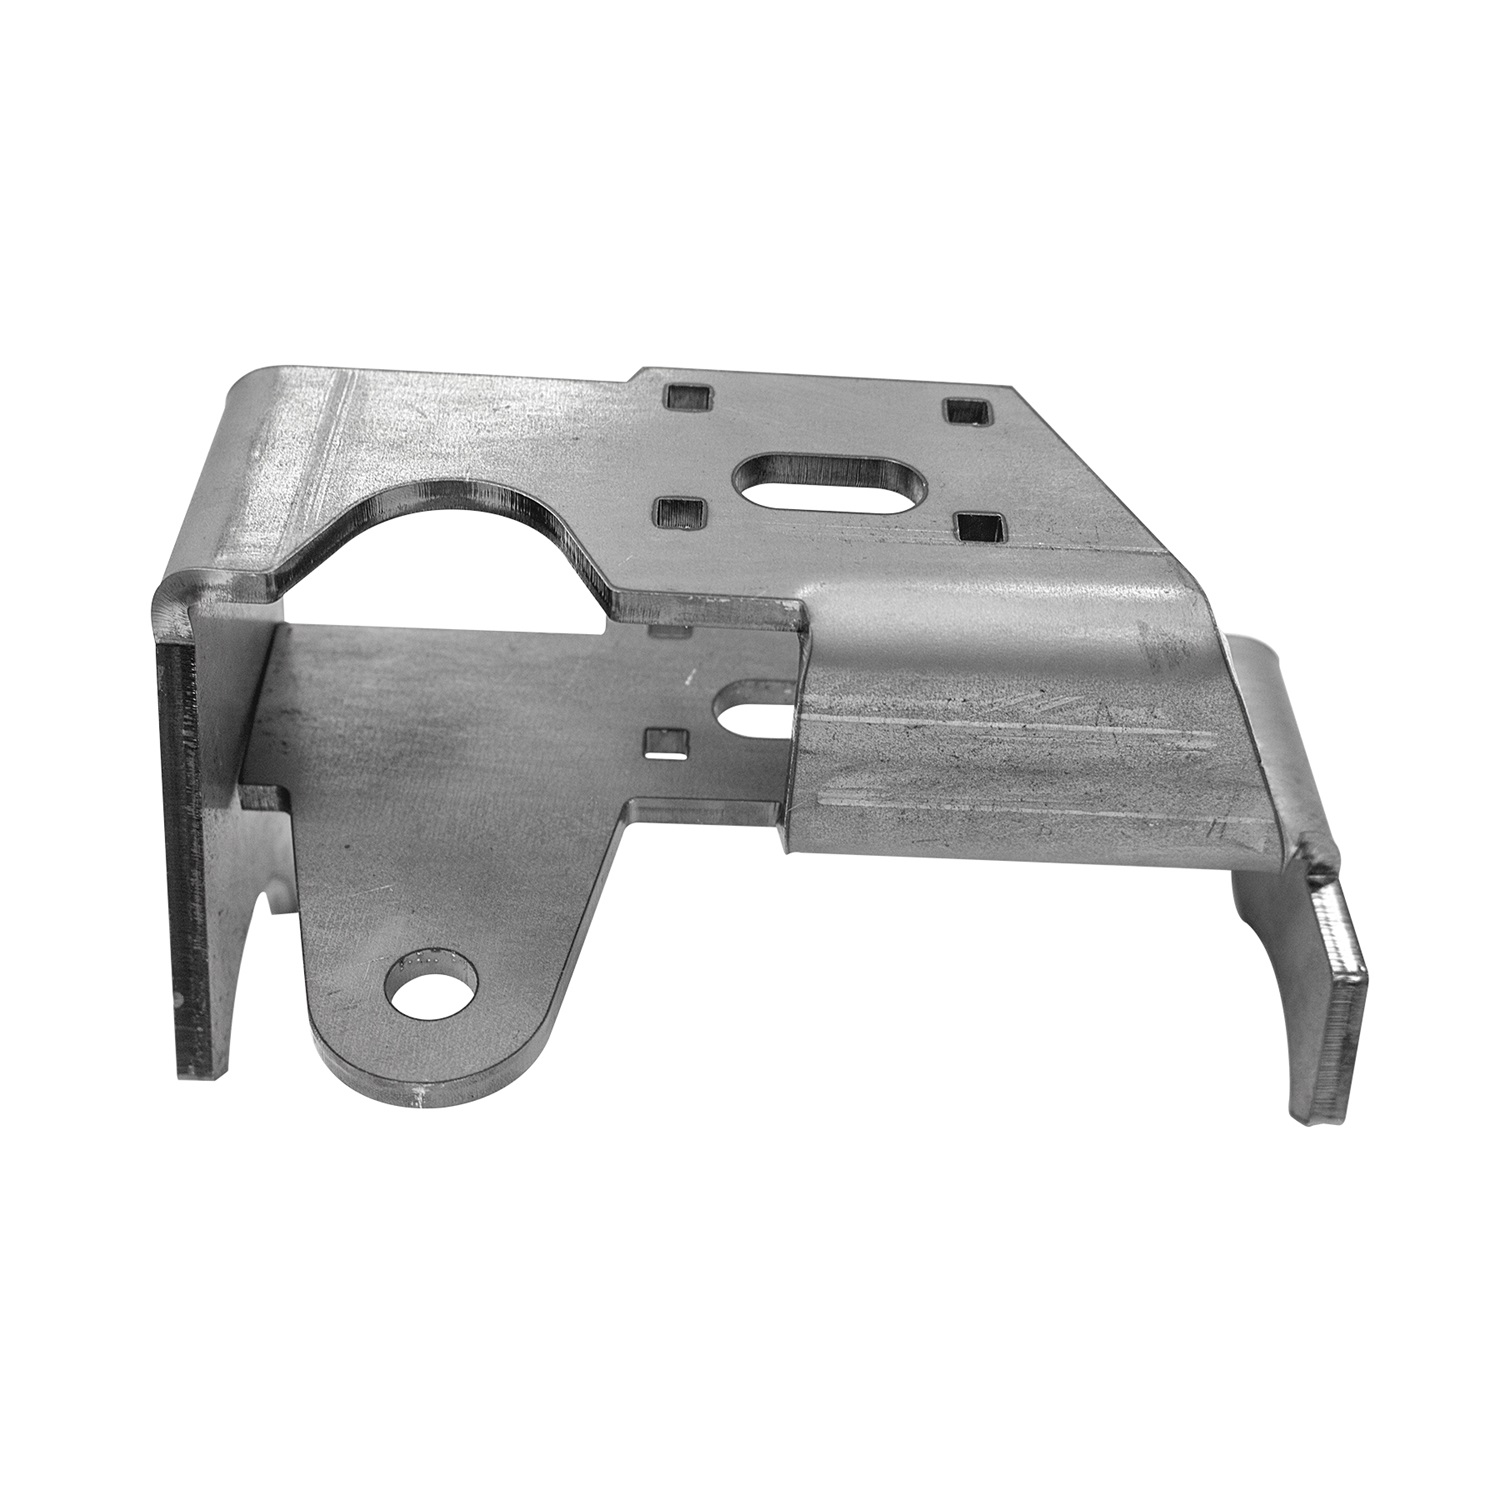 G2 Axle and Gear 68-2051-4 Track Bar Bracket